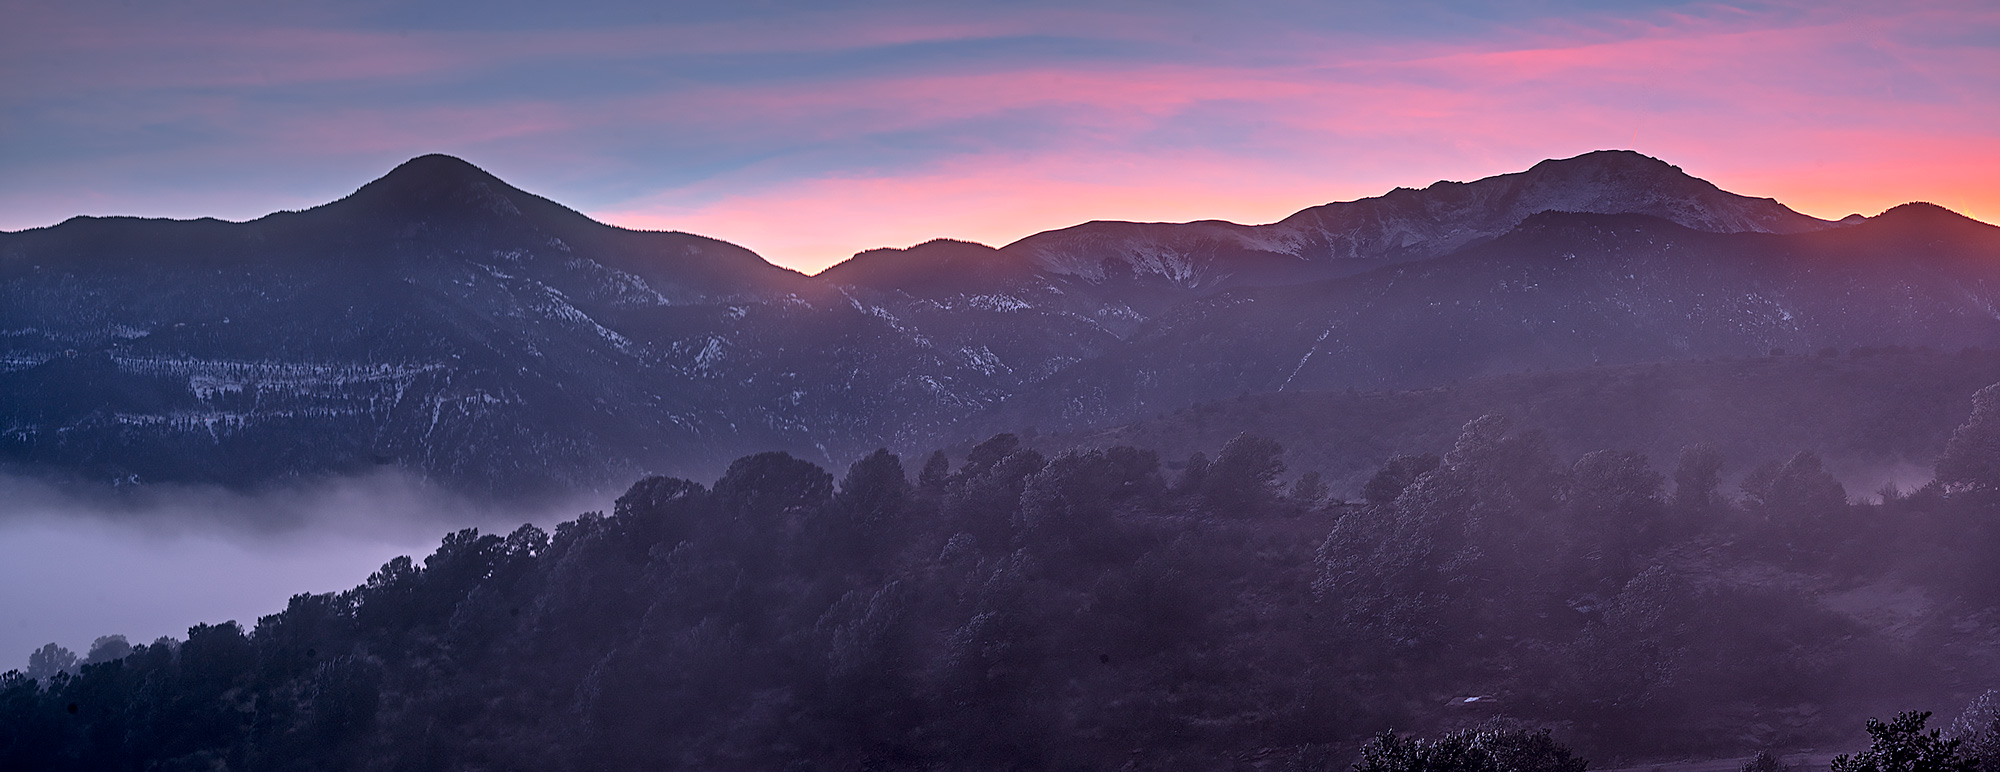 Pikes Peak and Rampart Range at sunset on a foggy frosty November day.